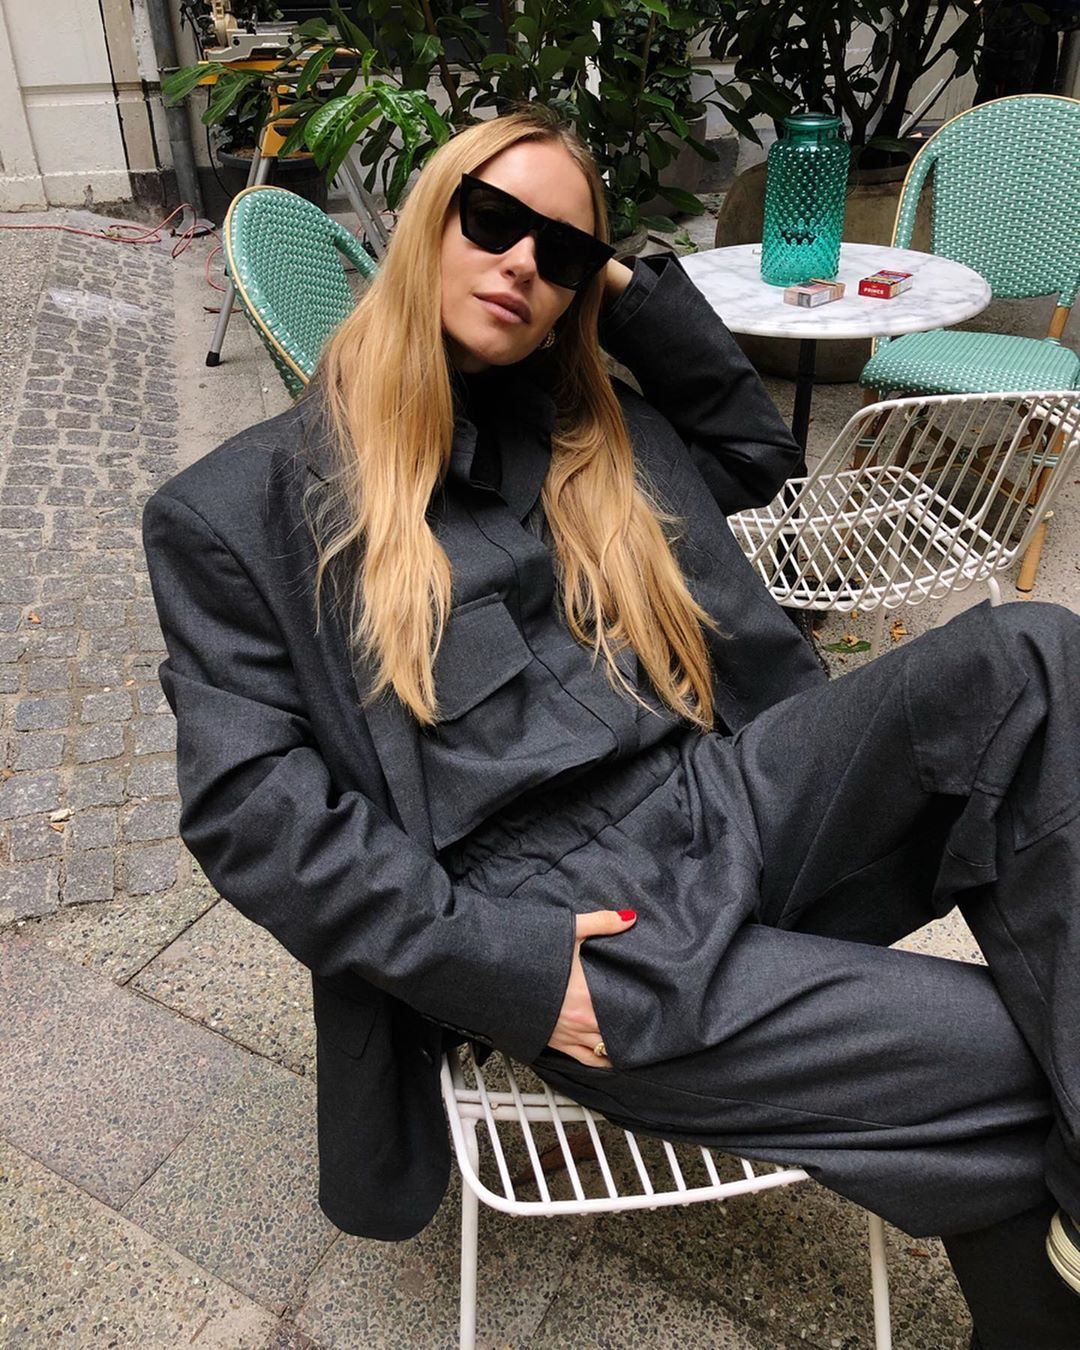 pernille-teisbaek-grey-oversized-suit-fall-instagram